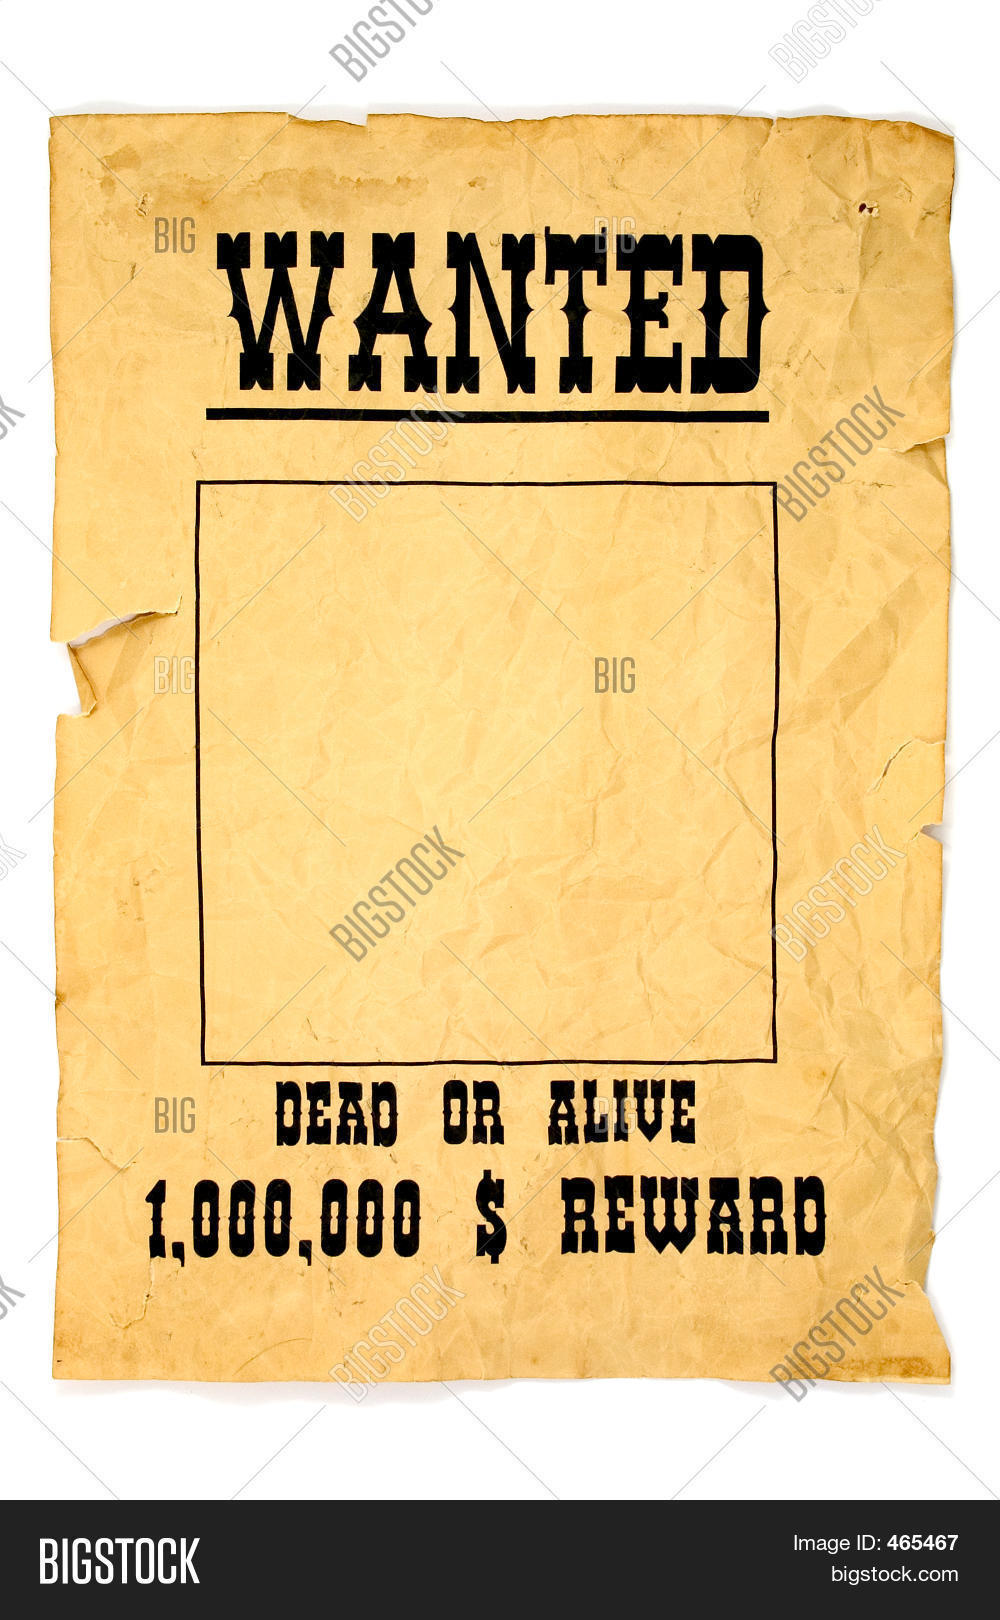 Wanted Poster Image Photo – Most Wanted Posters Templates